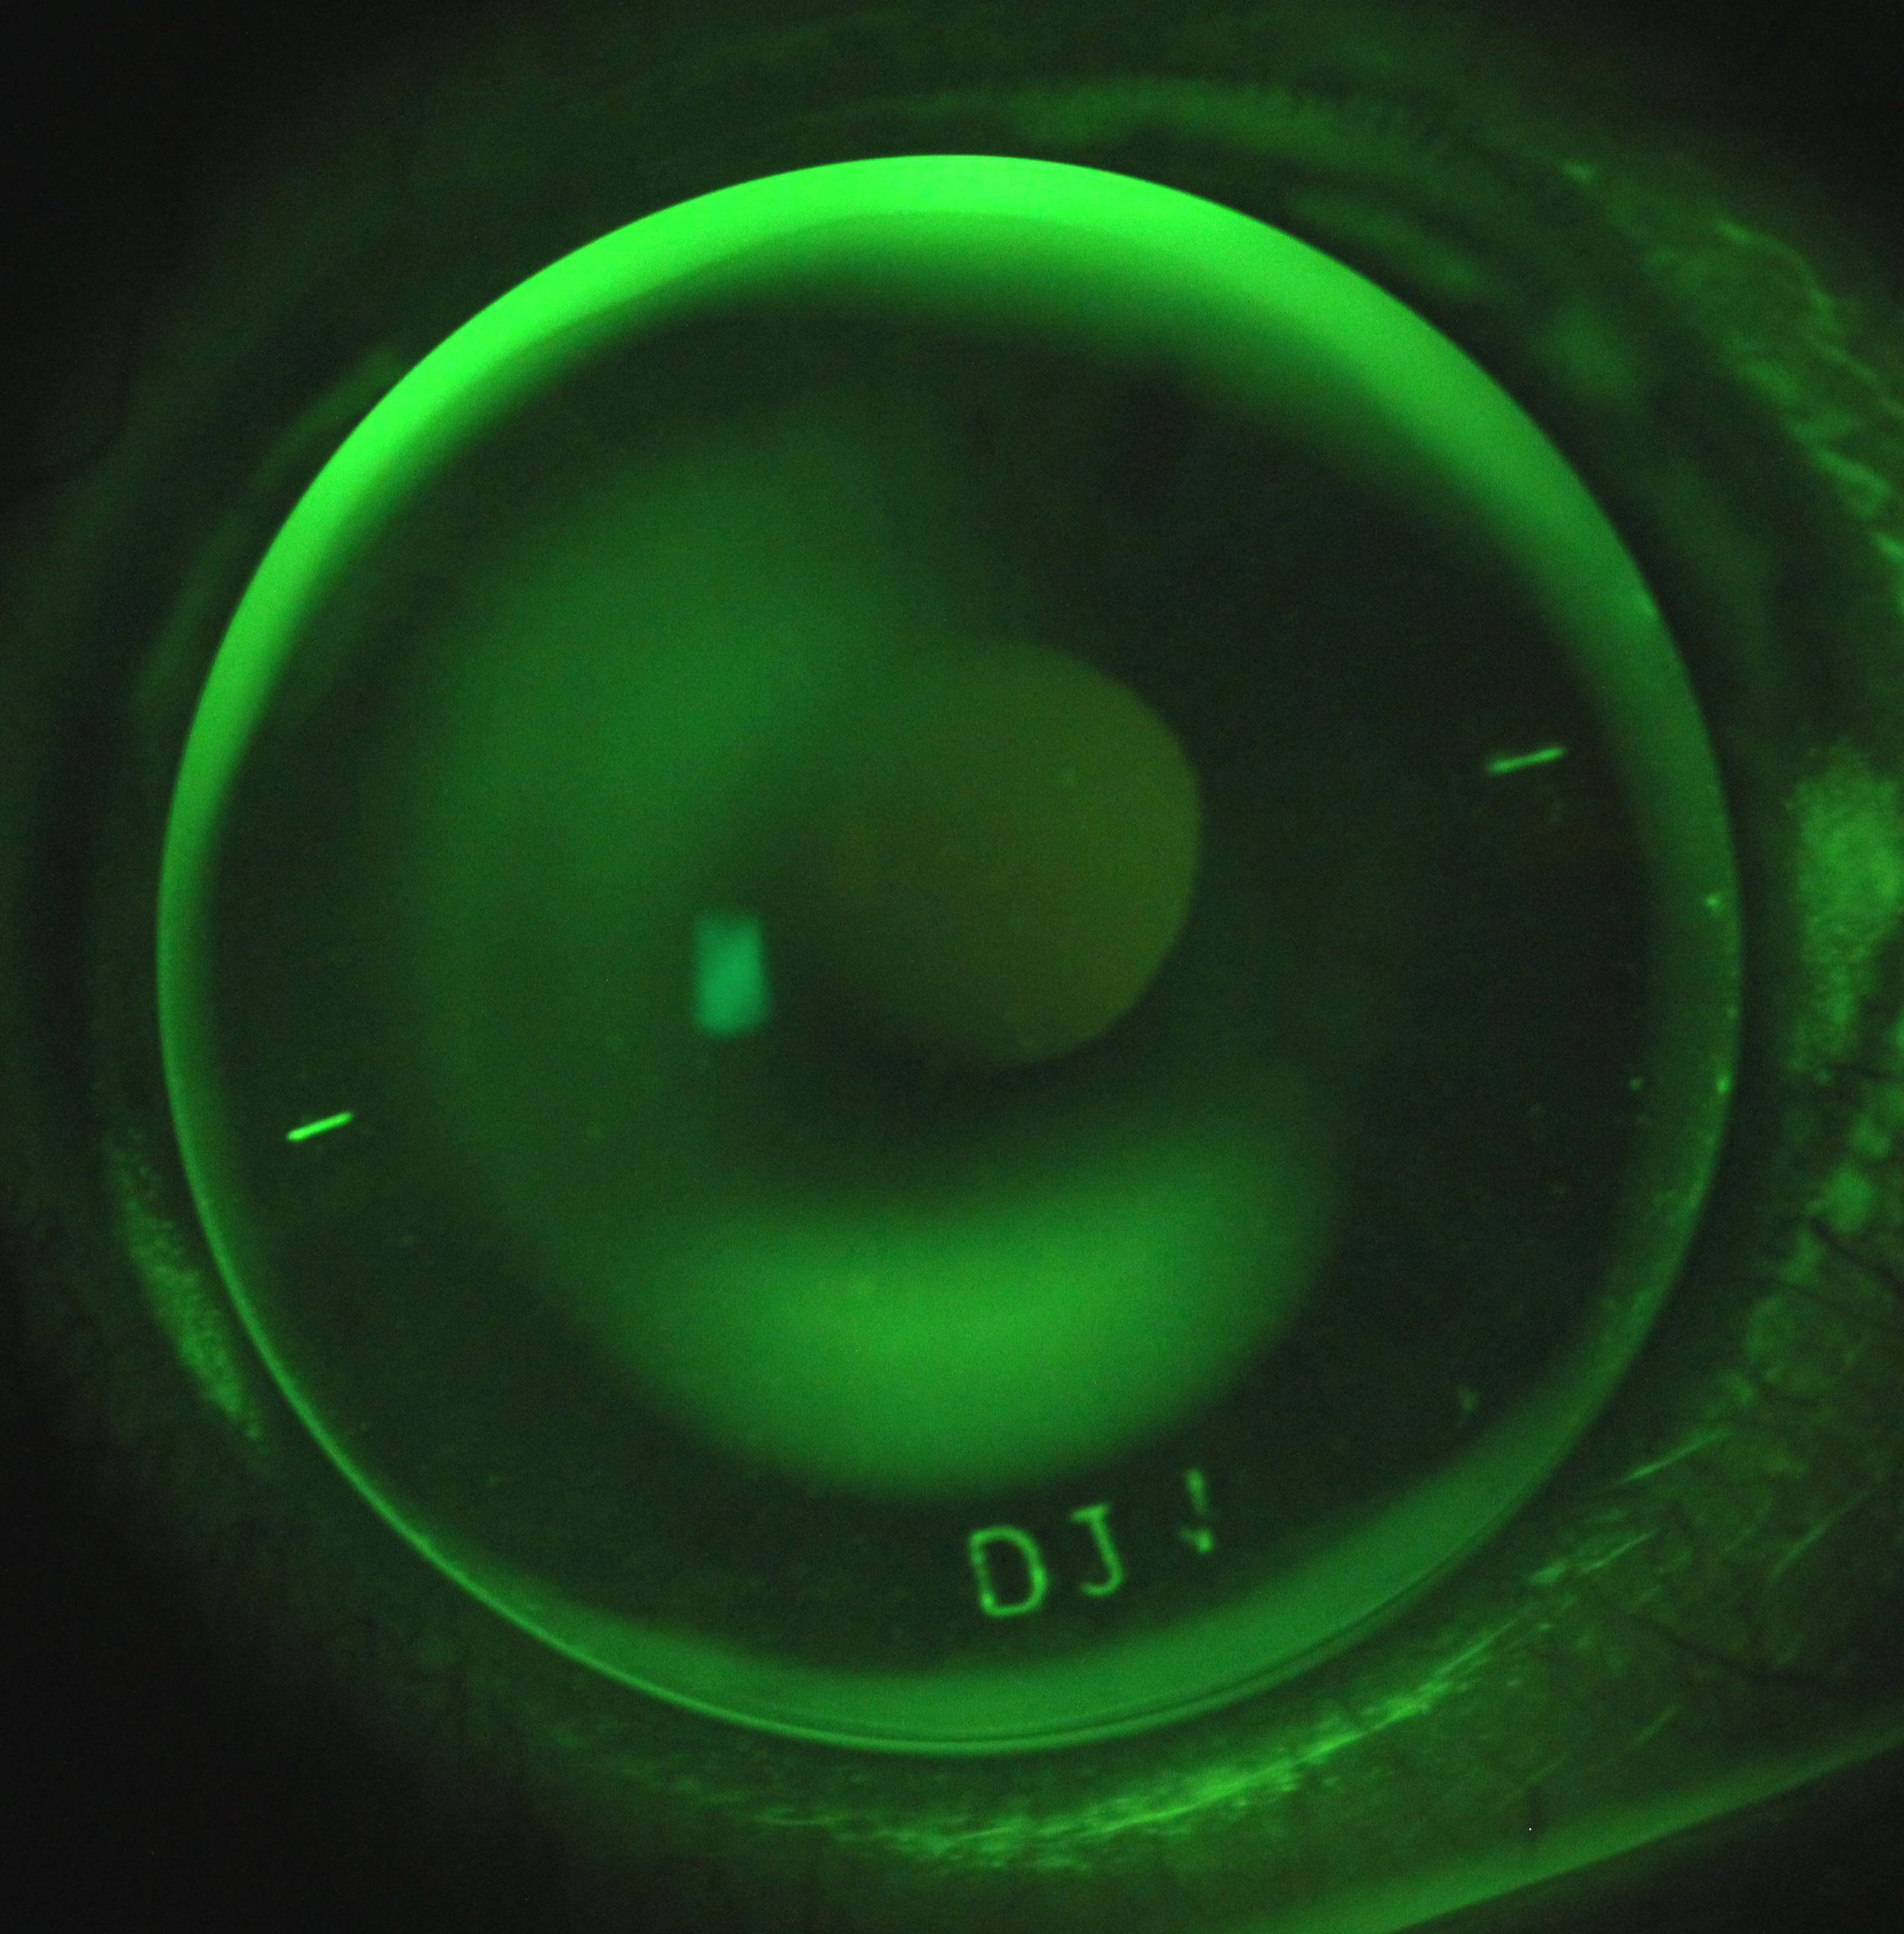 An eye with keratoconus fitted with a corneal rigid contact lens.